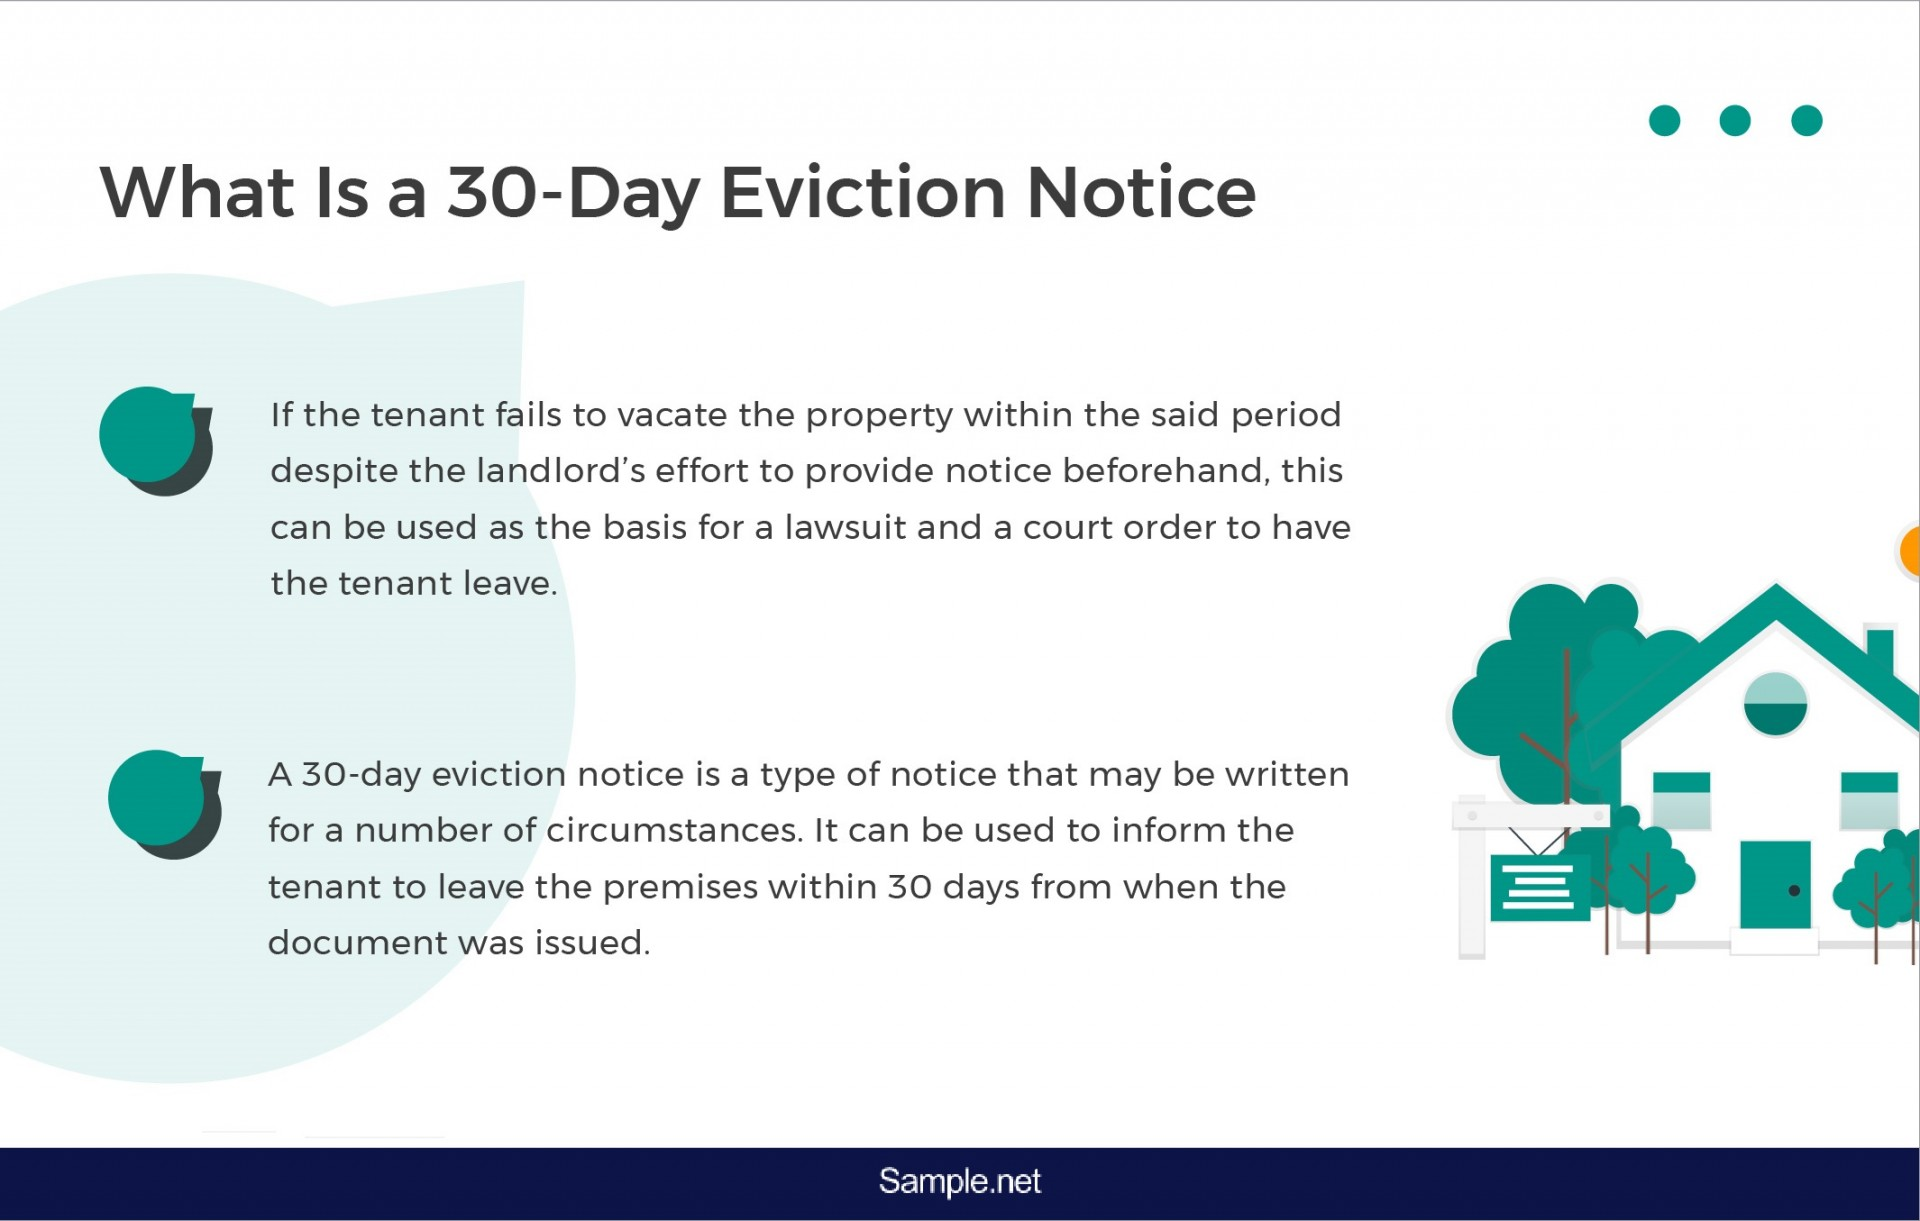 012 Impressive 30 Day Eviction Notice Template Concept  Pdf Form1920